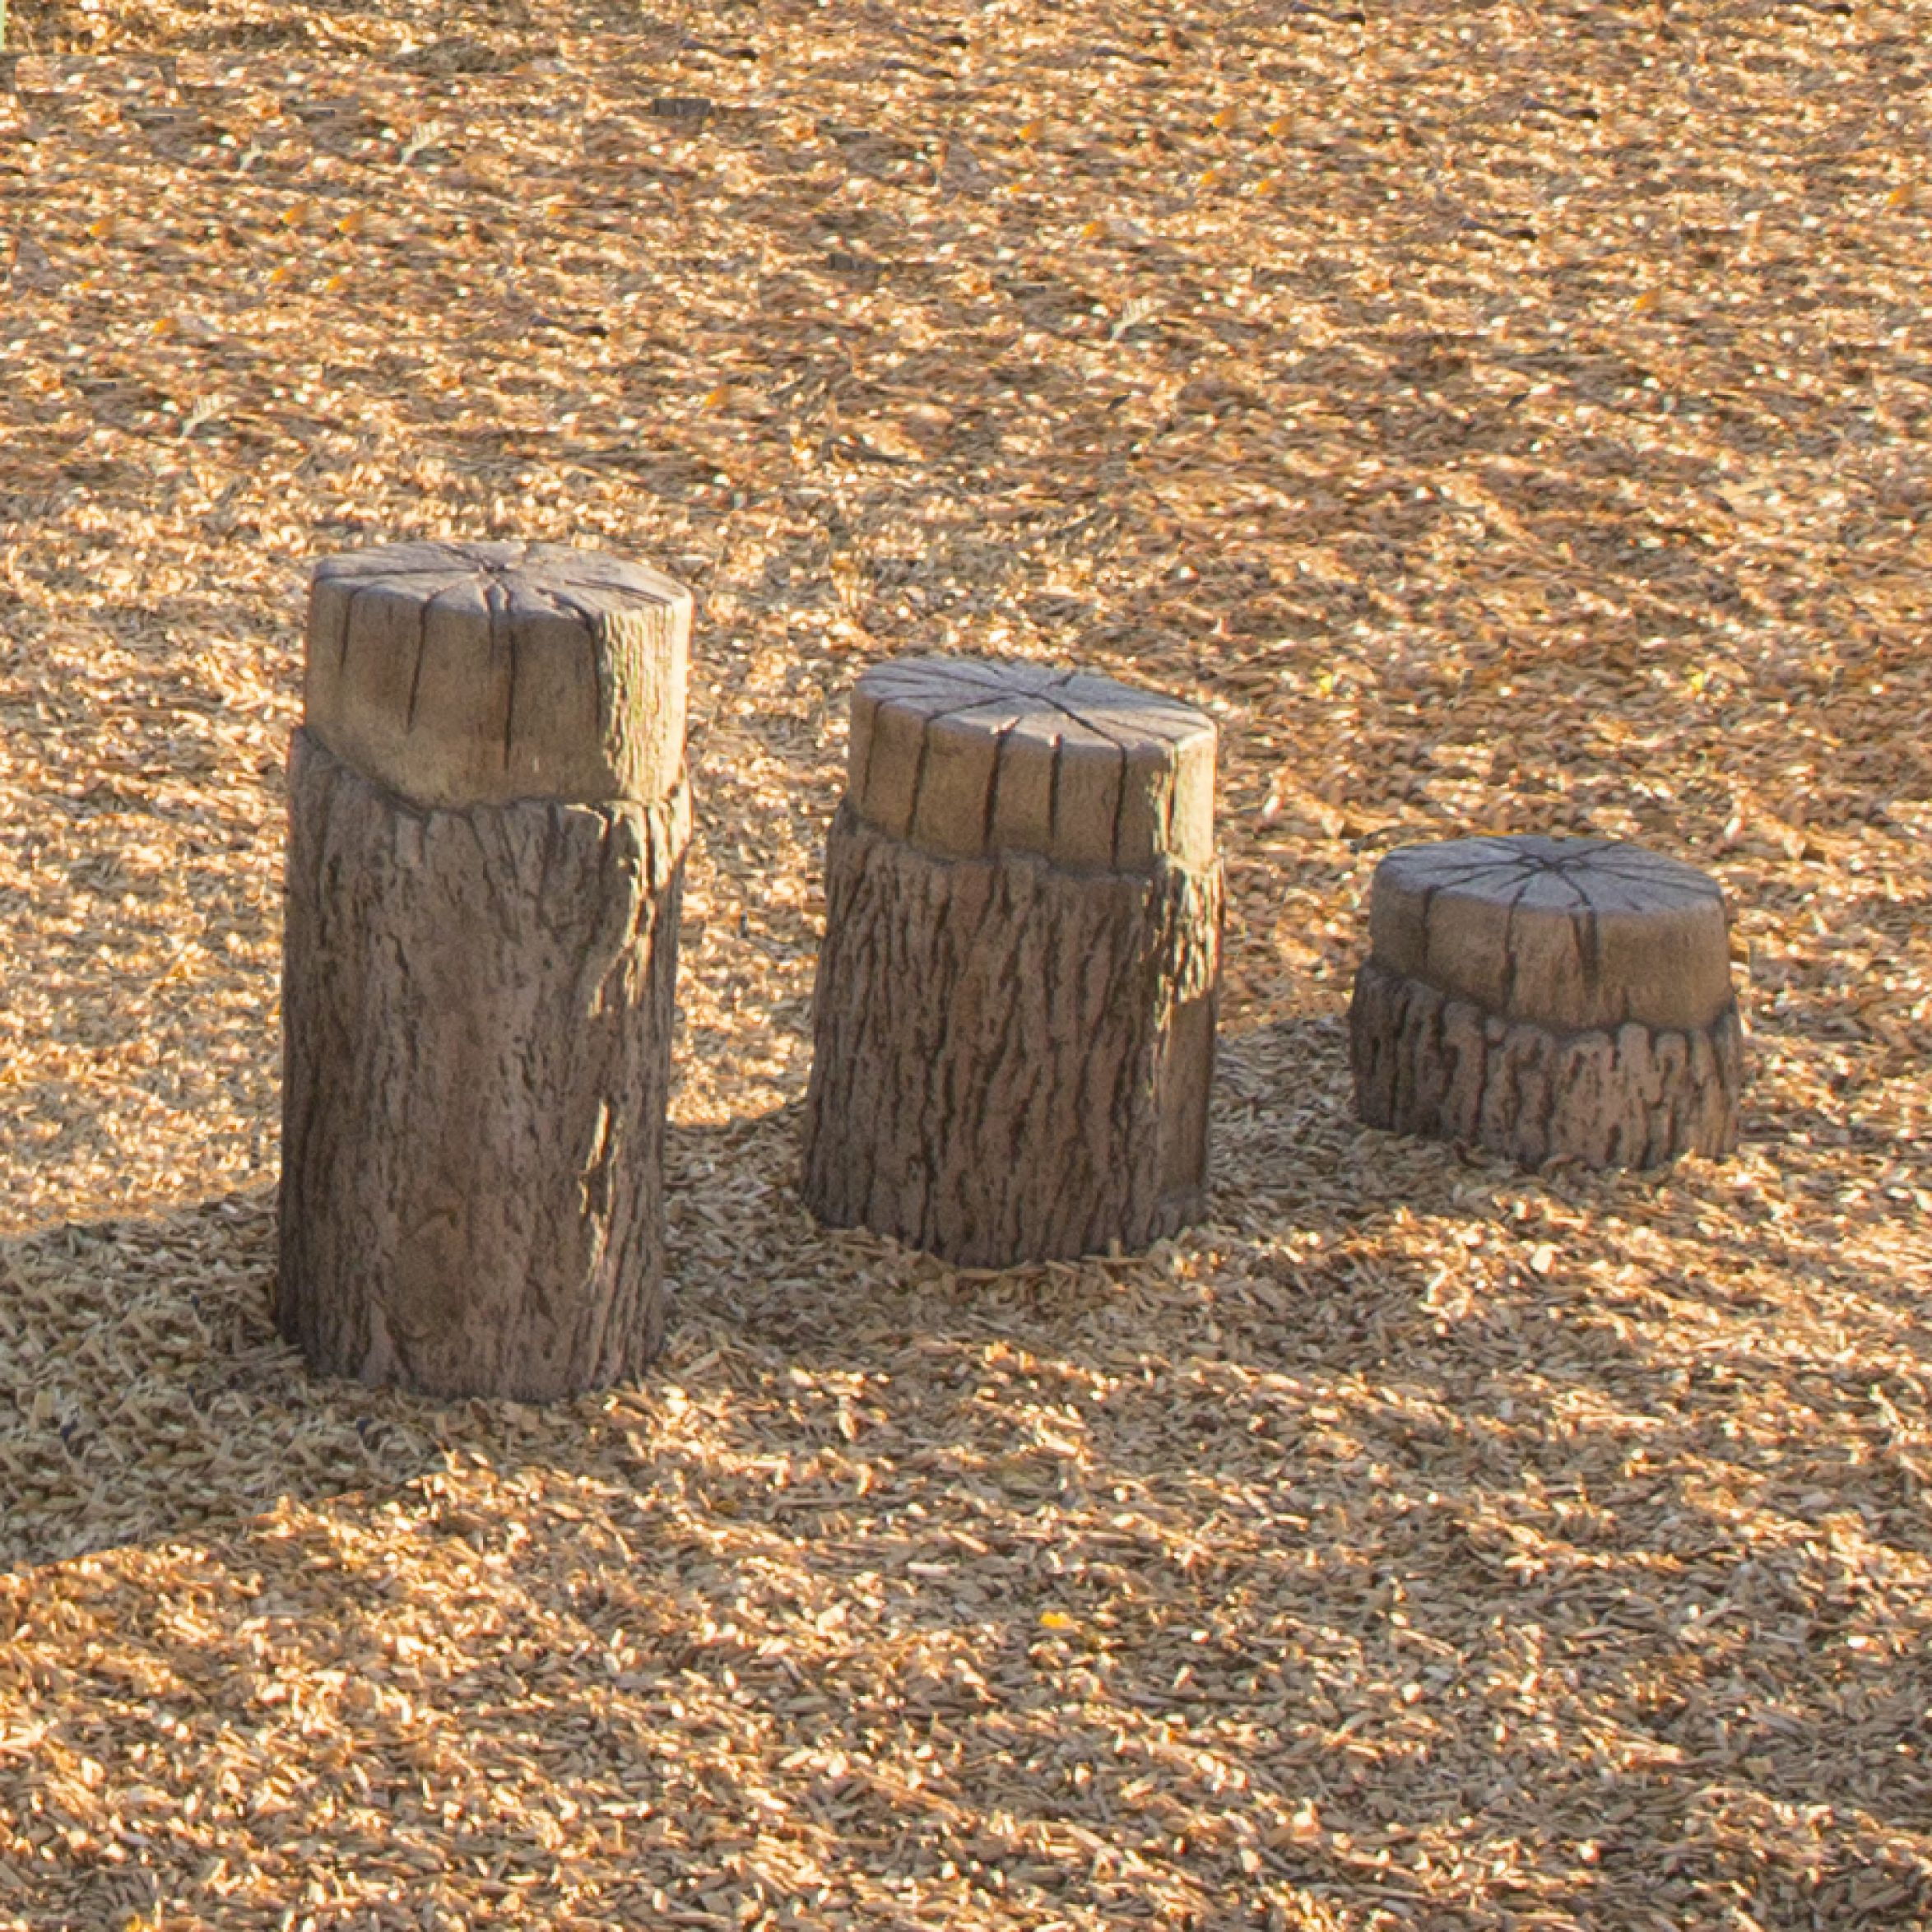 Tree Stumps - Set Of 3 (5-12 Yr.) Includes 1 Small; 1 Medium And 1 Large Stump - Up500 - Yoga And Pilates Eyebags And Neckpillows UP500